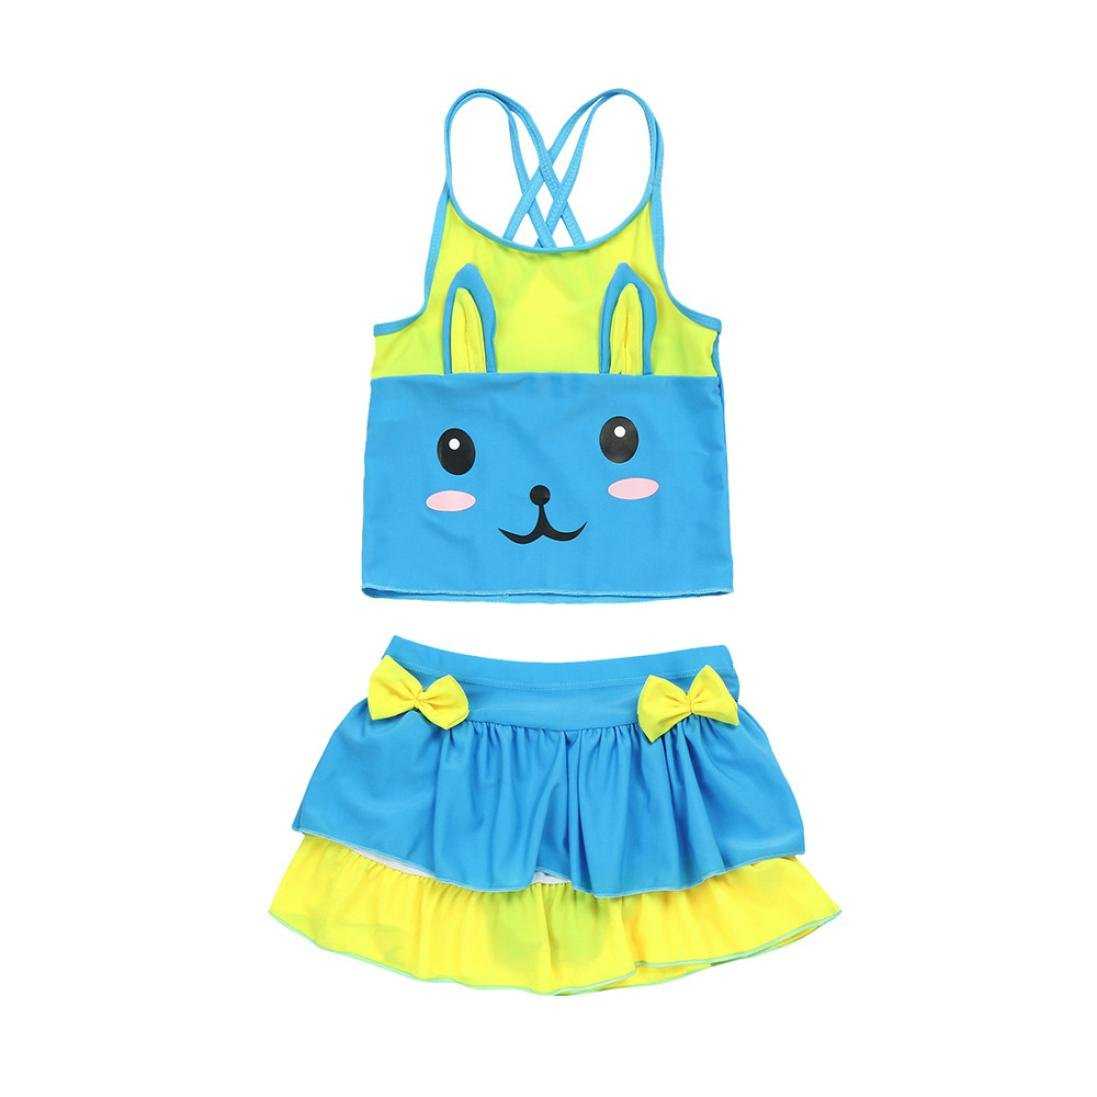 Little Girls Lovely Bathing Suits Size 5-7 Years 2 Pieces Cat Ears & Bow Bikinis Sets Blue)